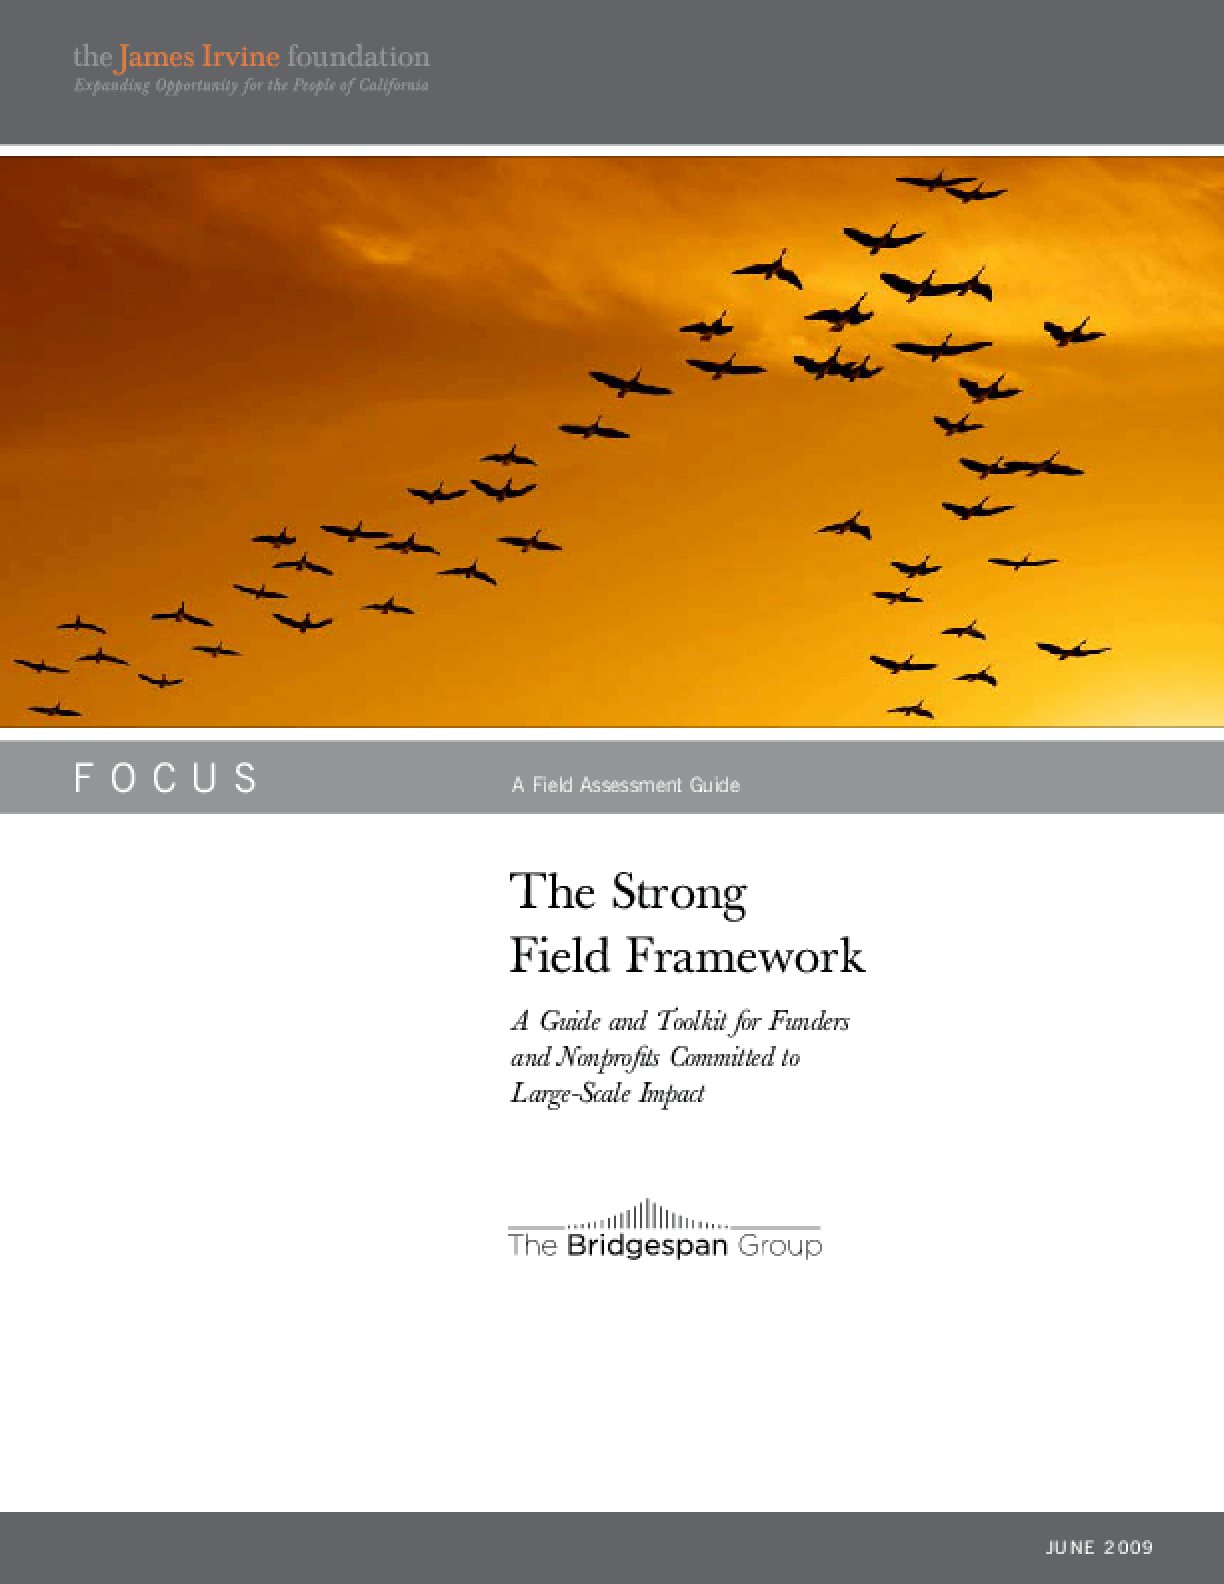 The Strong Field Framework: A Guide and Toolkit for Funders and Nonprofits Committed to Large-Scale Impact